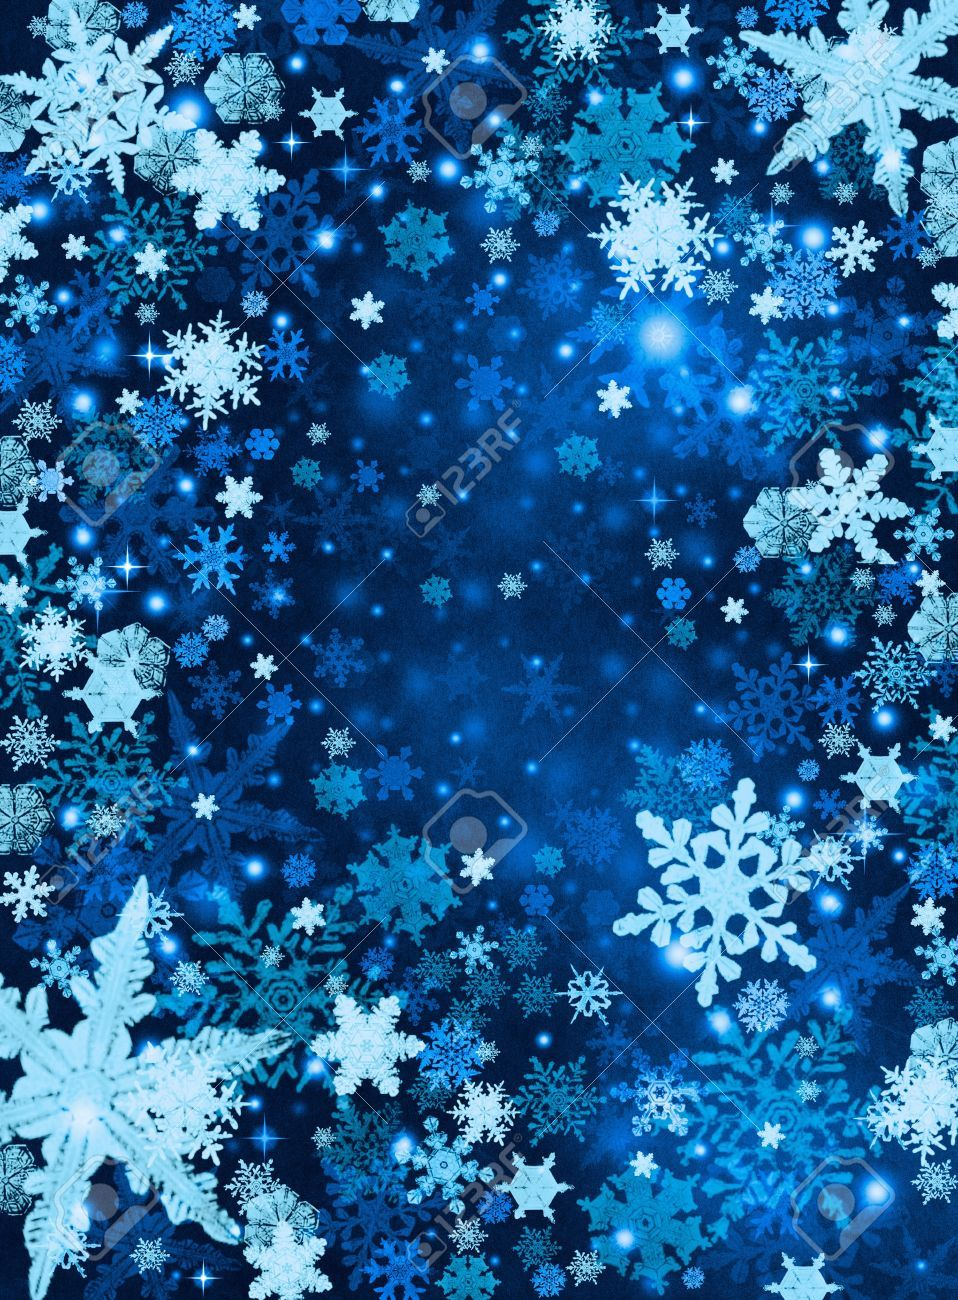 light and dark blue snowflakes on a paper background